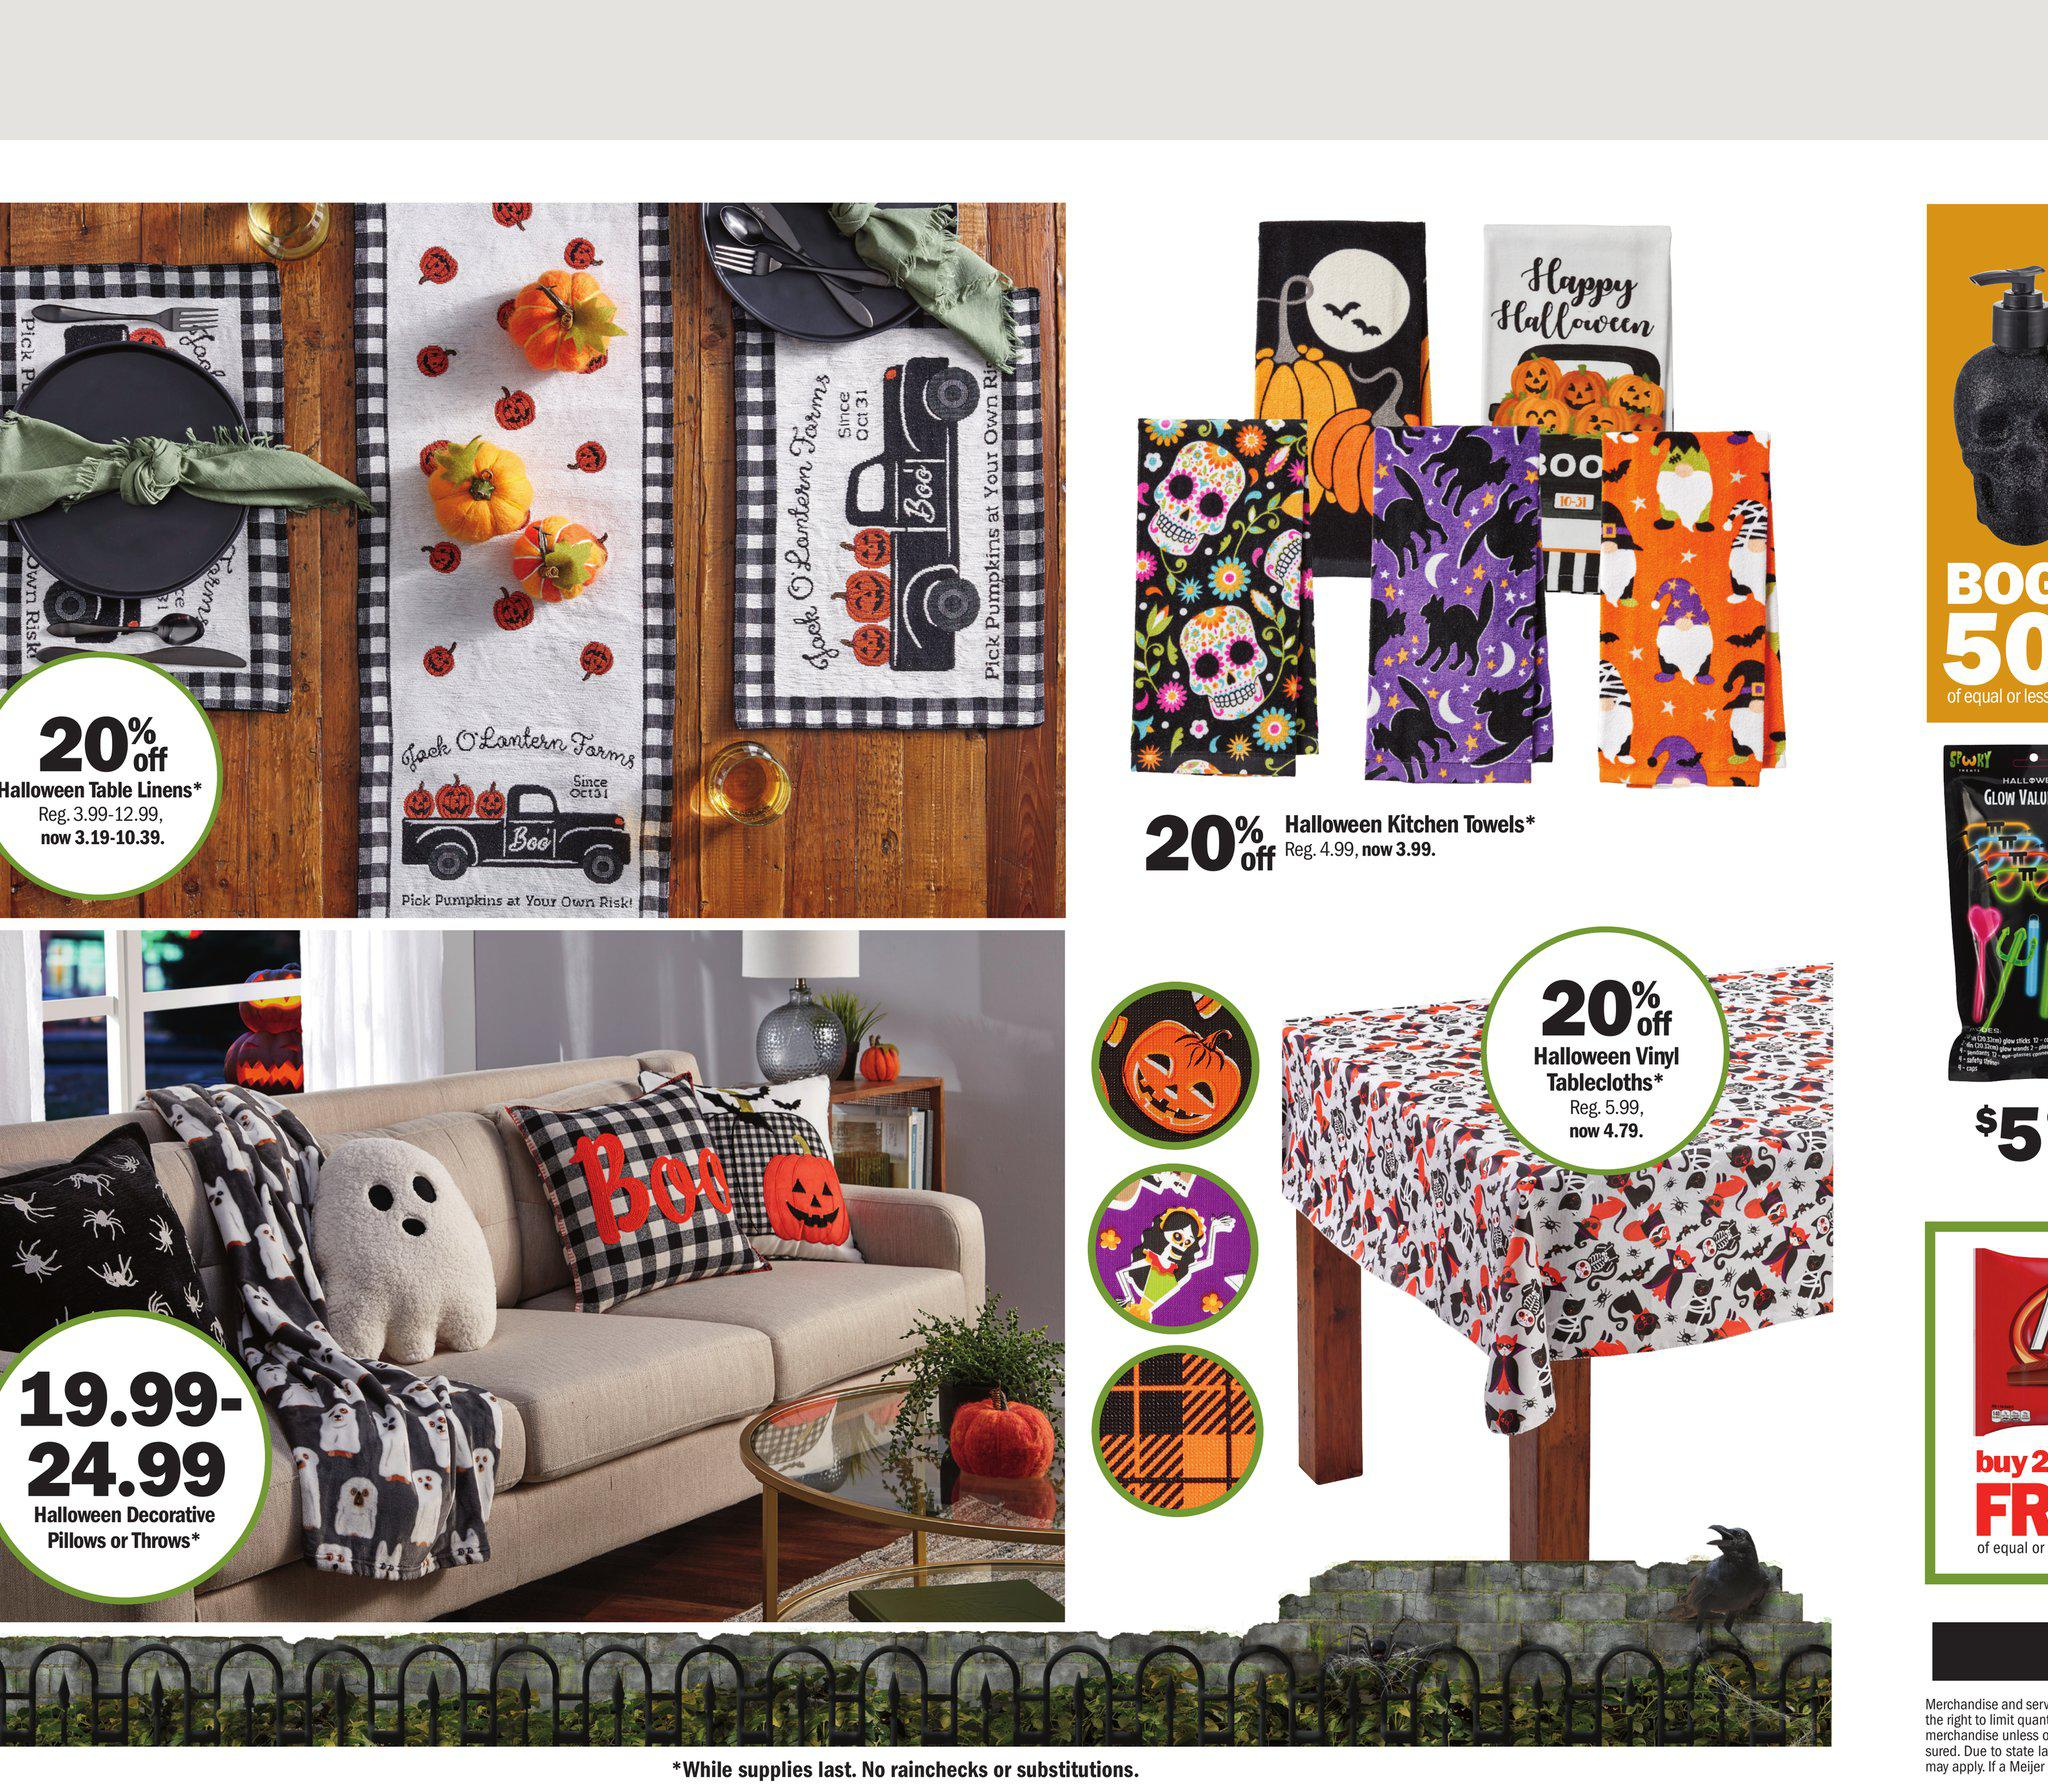 03.10.2021 Meijer ad 2. page